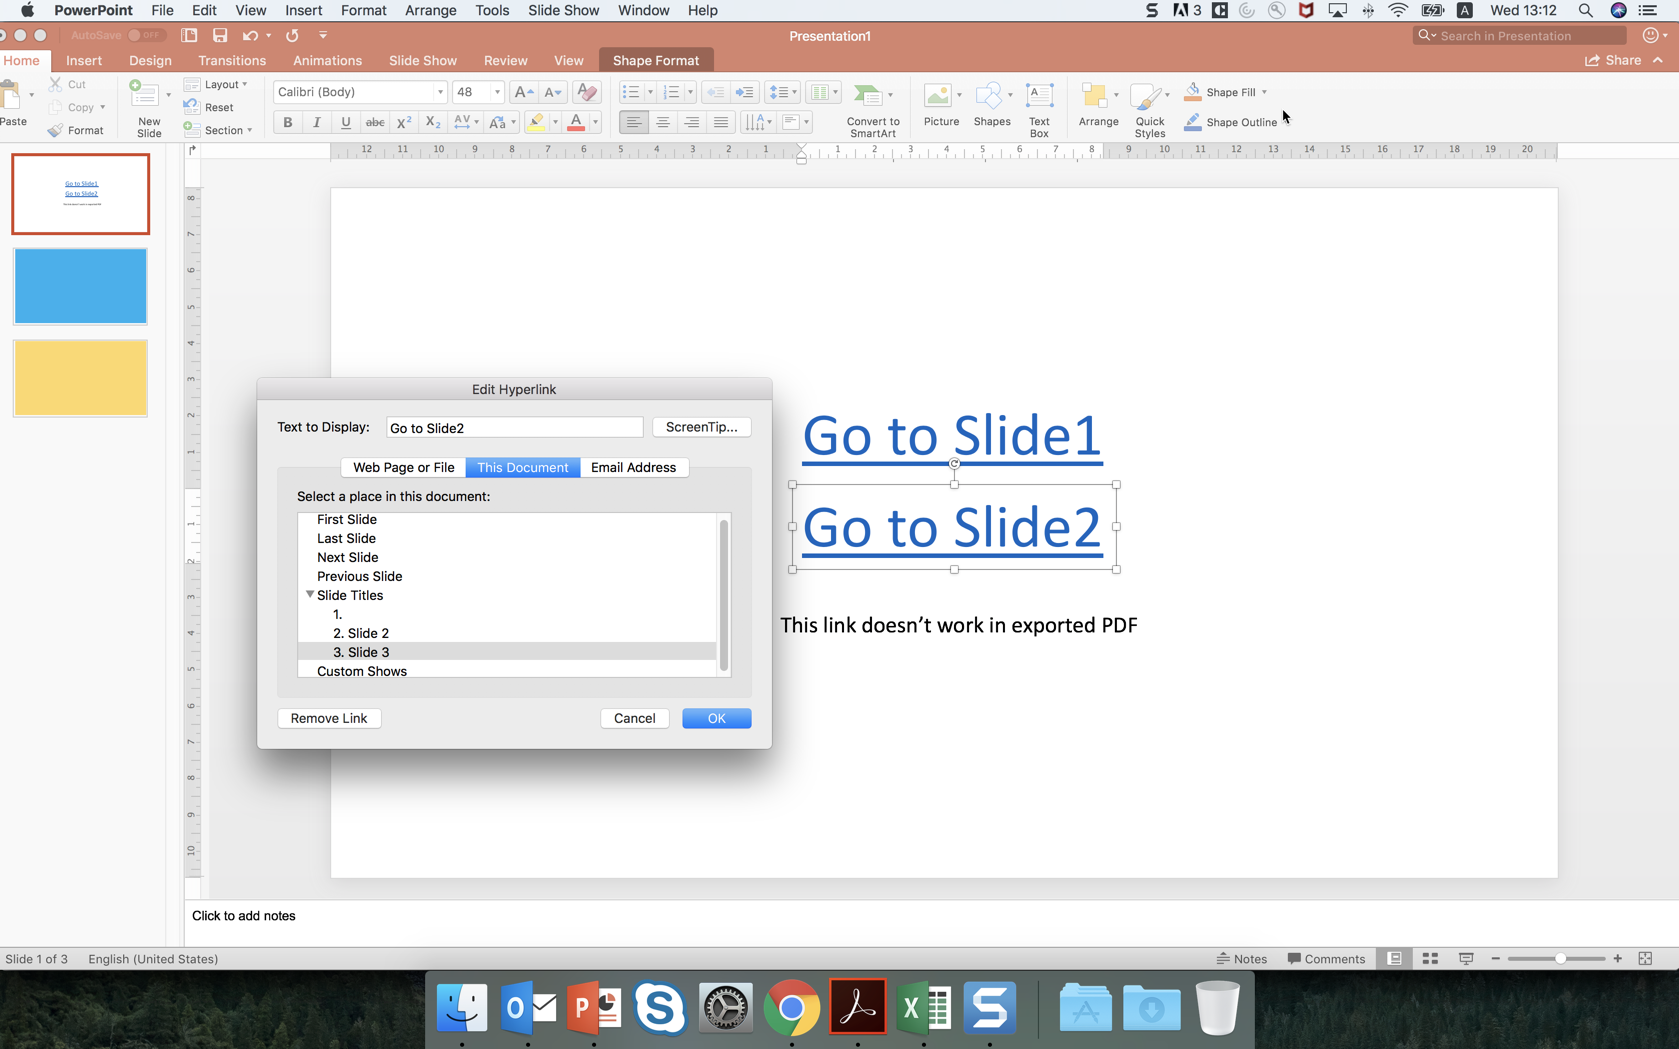 the hyperlink is not working in PDF exported from powerpoint for Mac